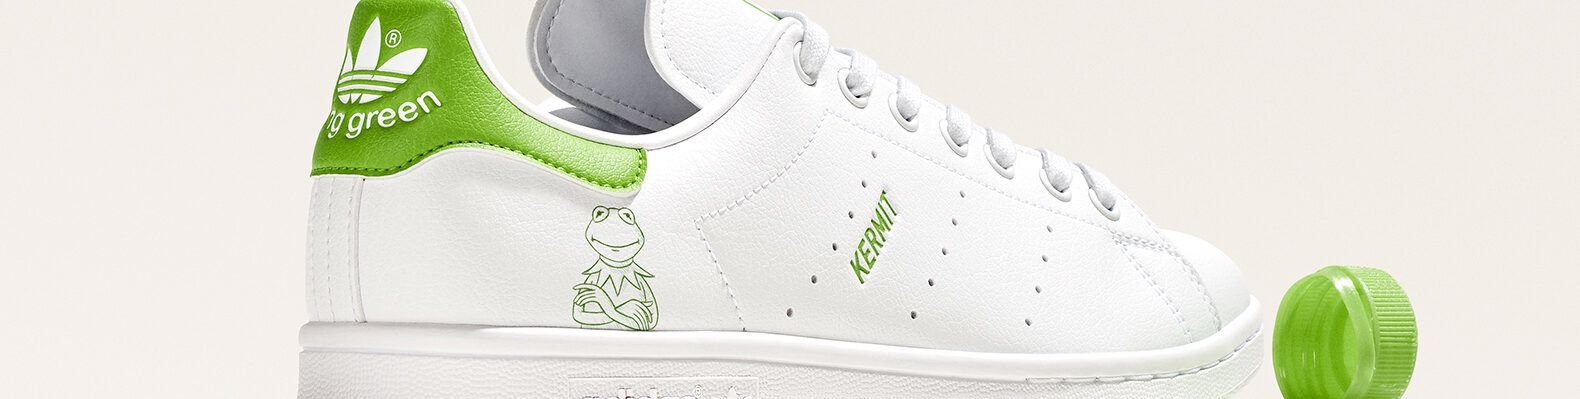 white and green sneaker with Kermit the Frog design